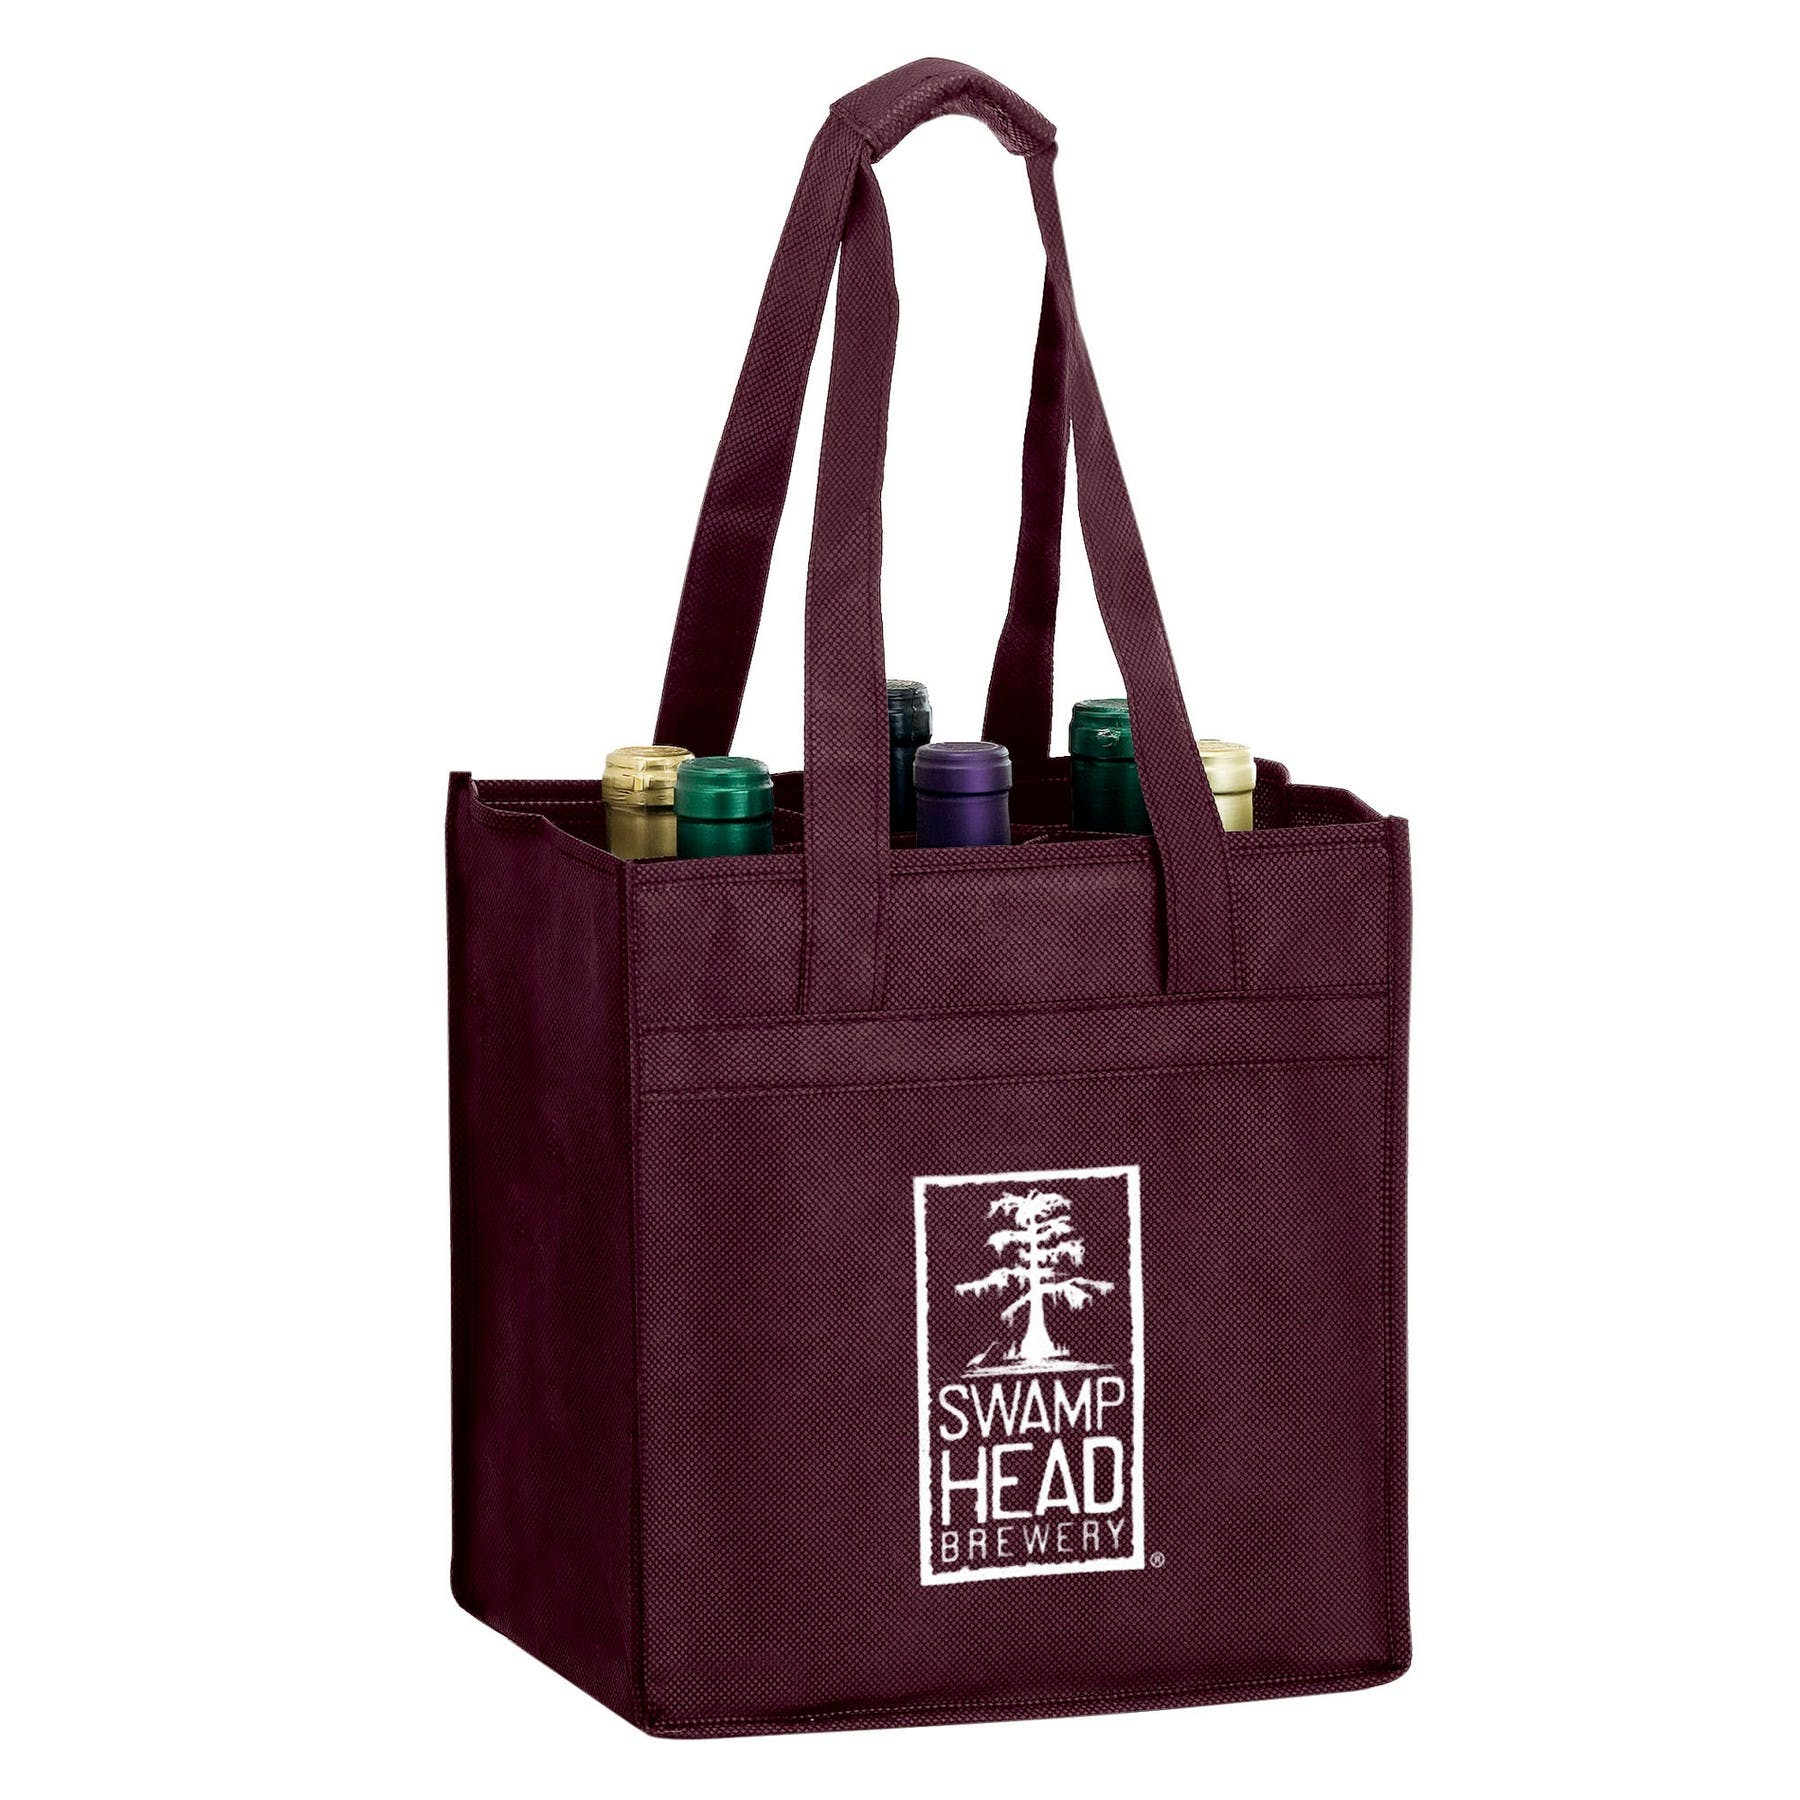 Bag with 6 Wine Bottle Capacity (Item # FDLML-GWMDW) Bottle carrier sold by InkEasy